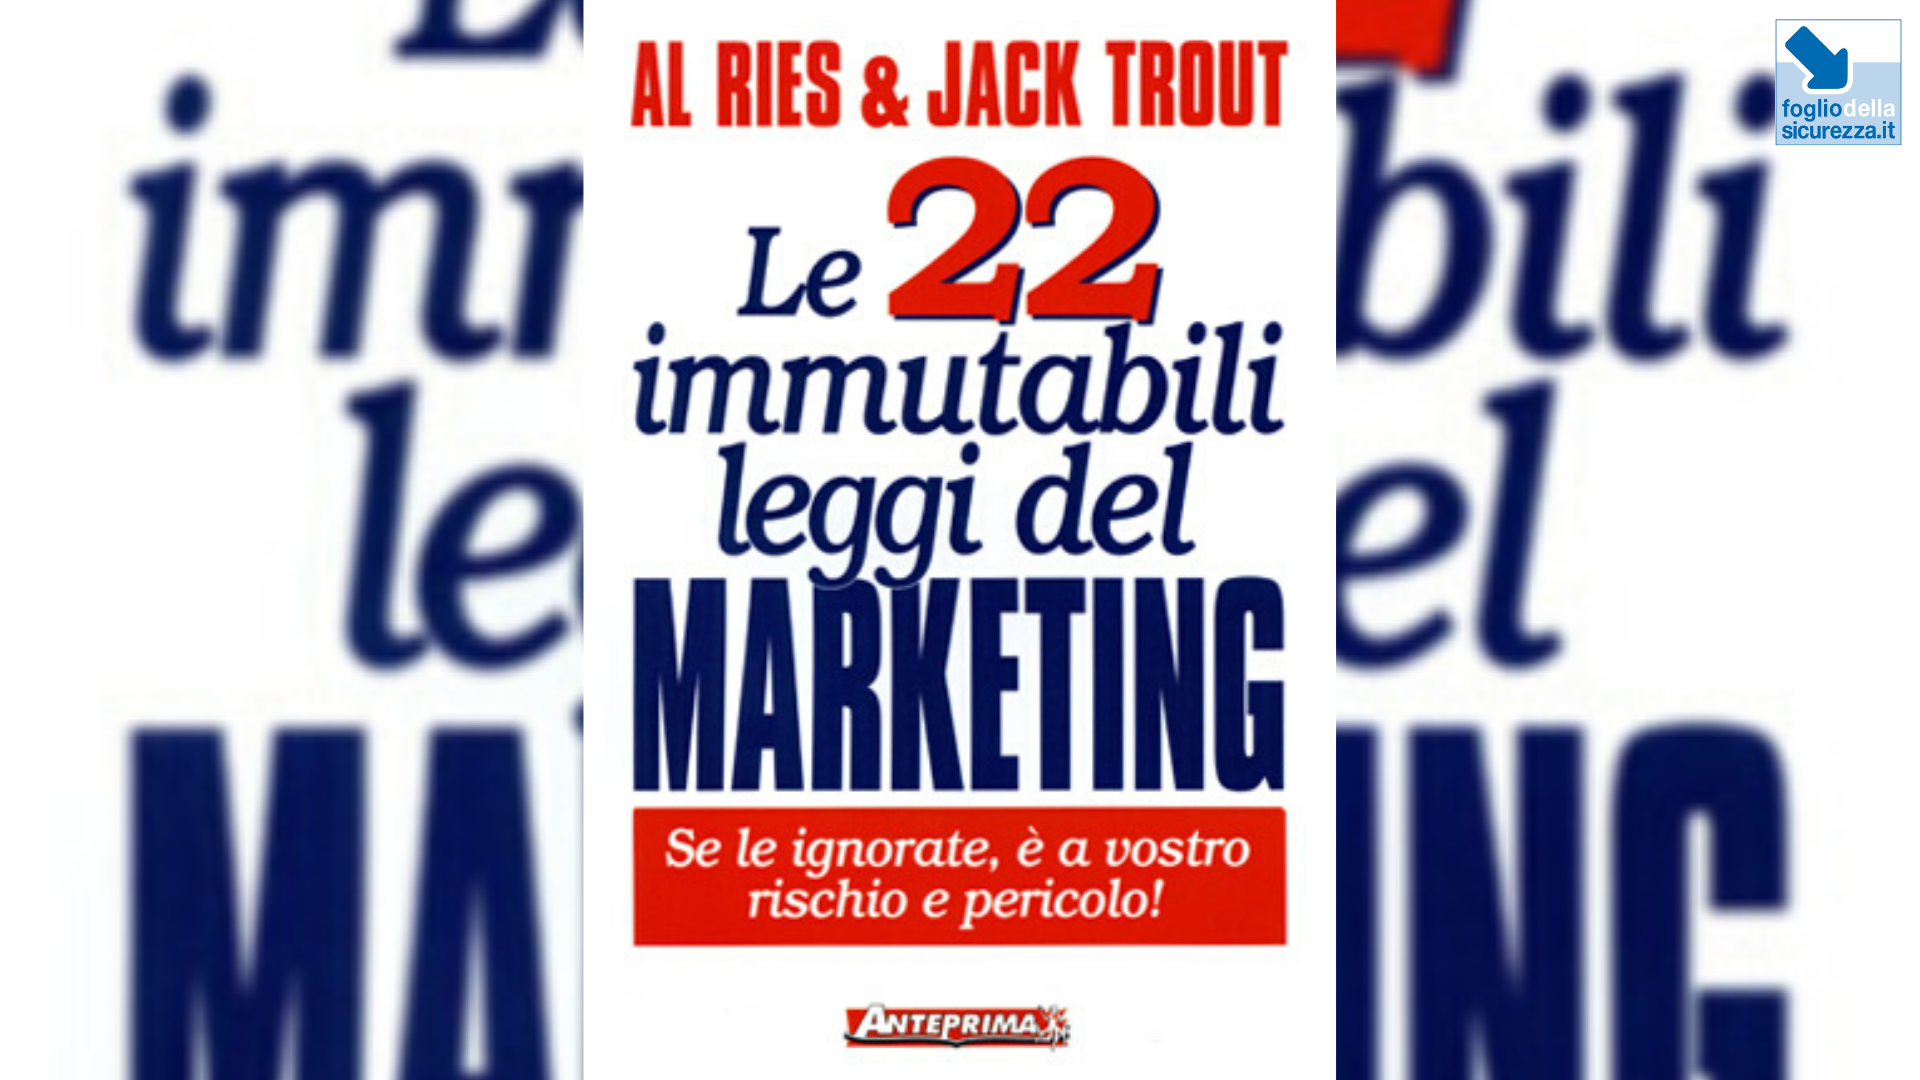 Le 22 immutabili leggi del marketing per la safety